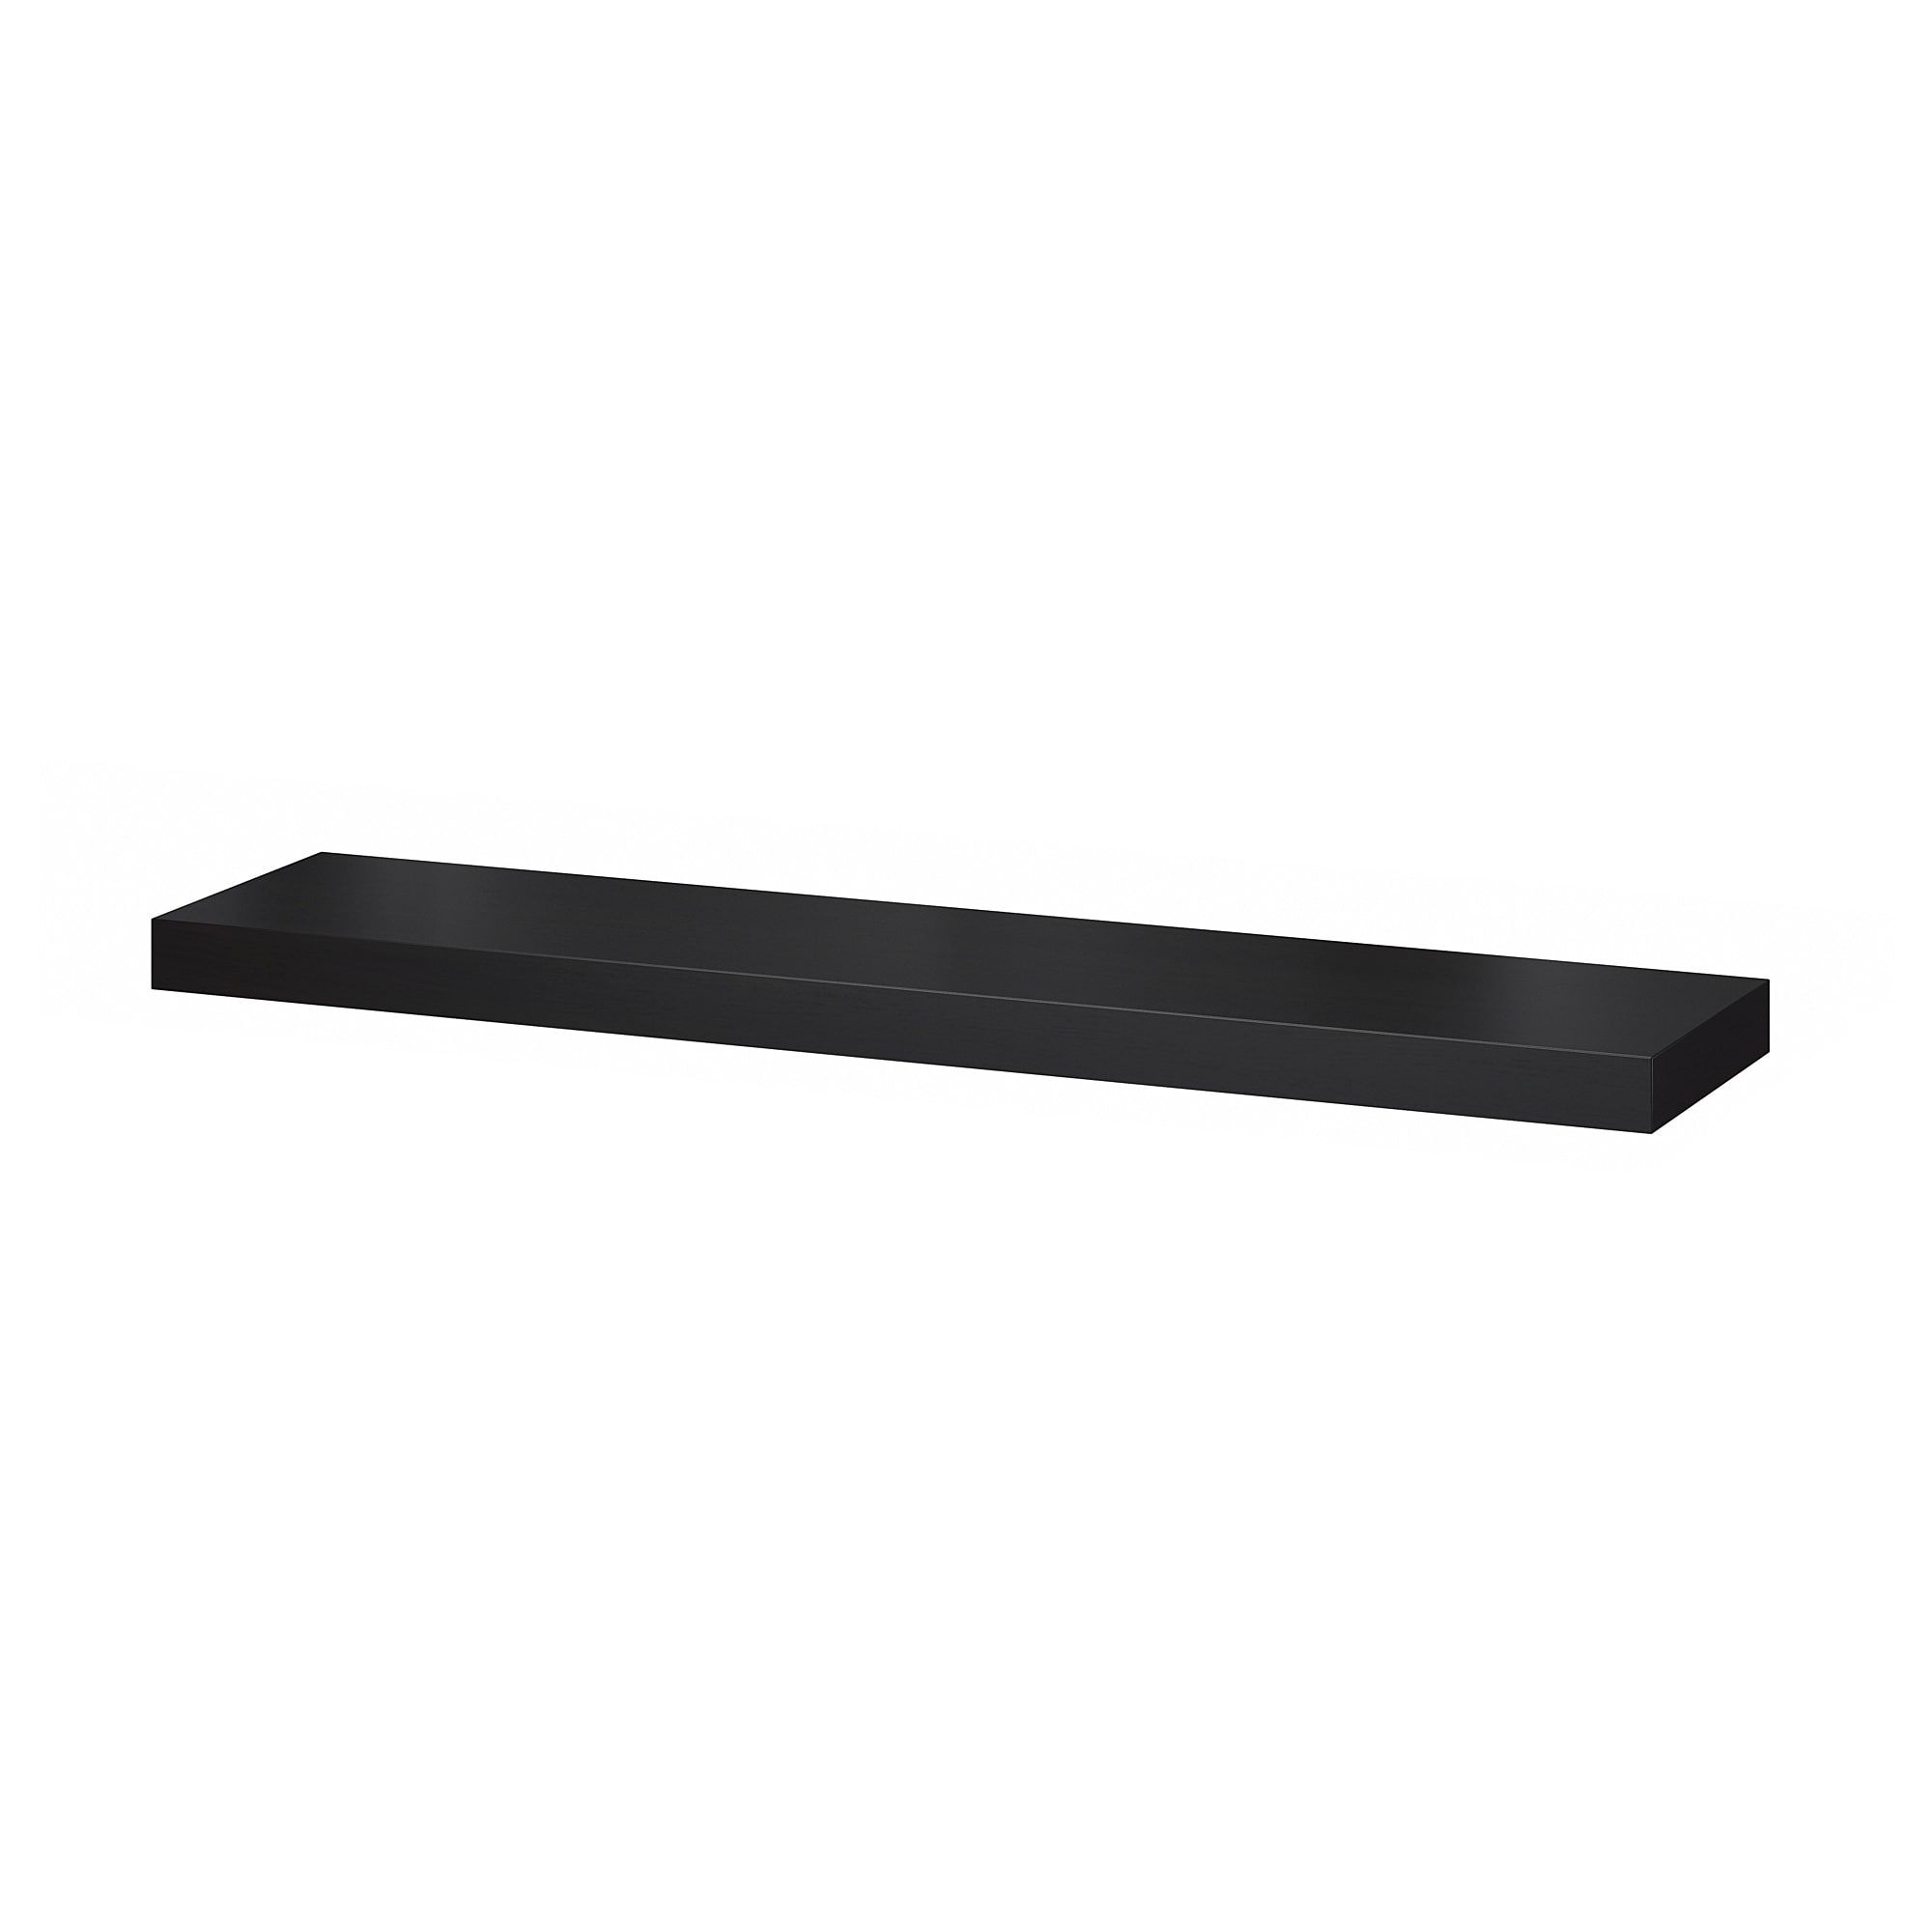 Ikea Lack Wandregal Birke Lack Wandregal Schwarzbraun In 2019 Products Ikea Lack Wall